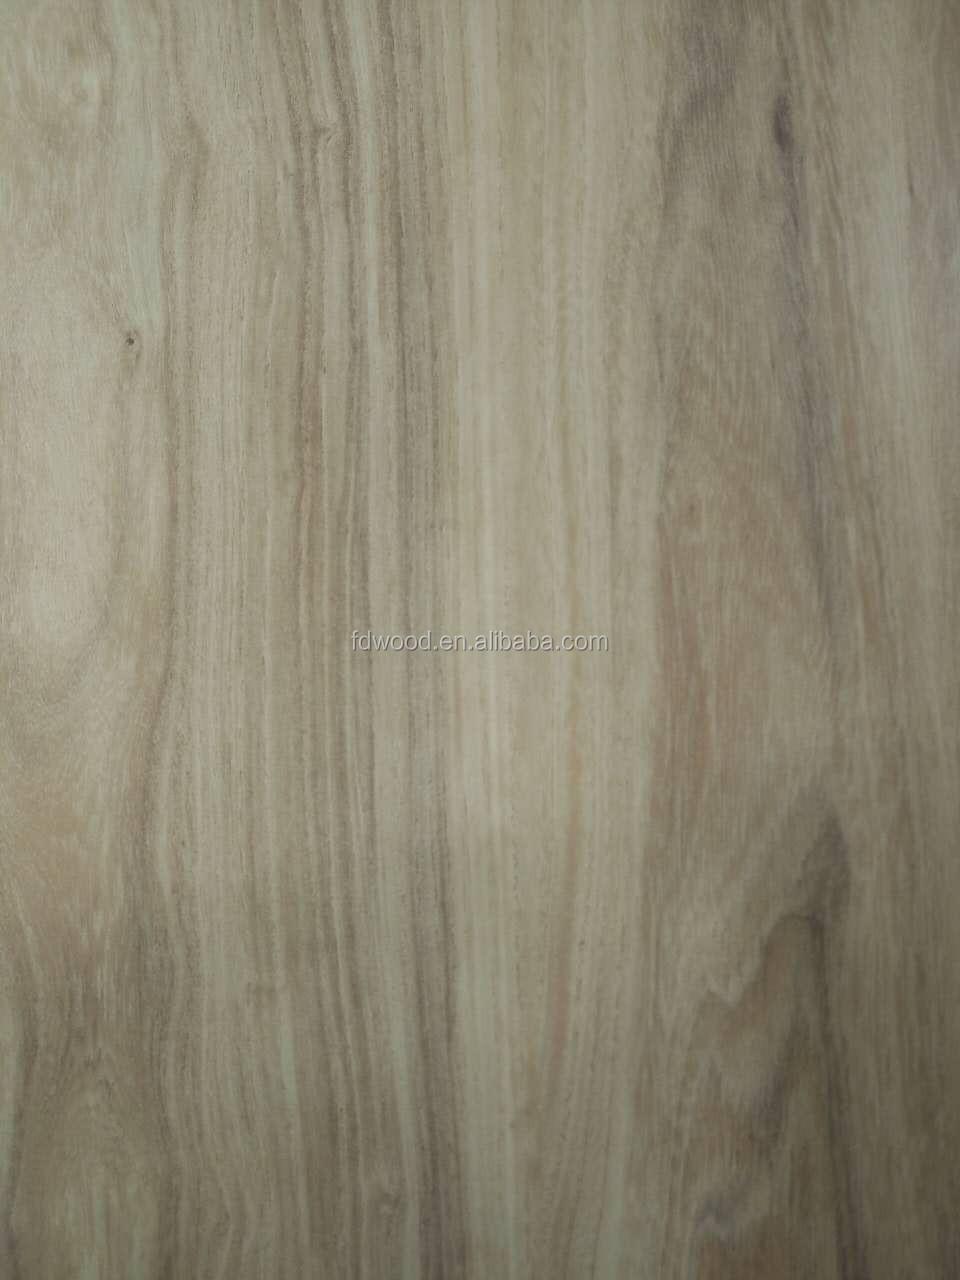 Paper Faced Plywood ~ Paper laminated plywood melamine buy